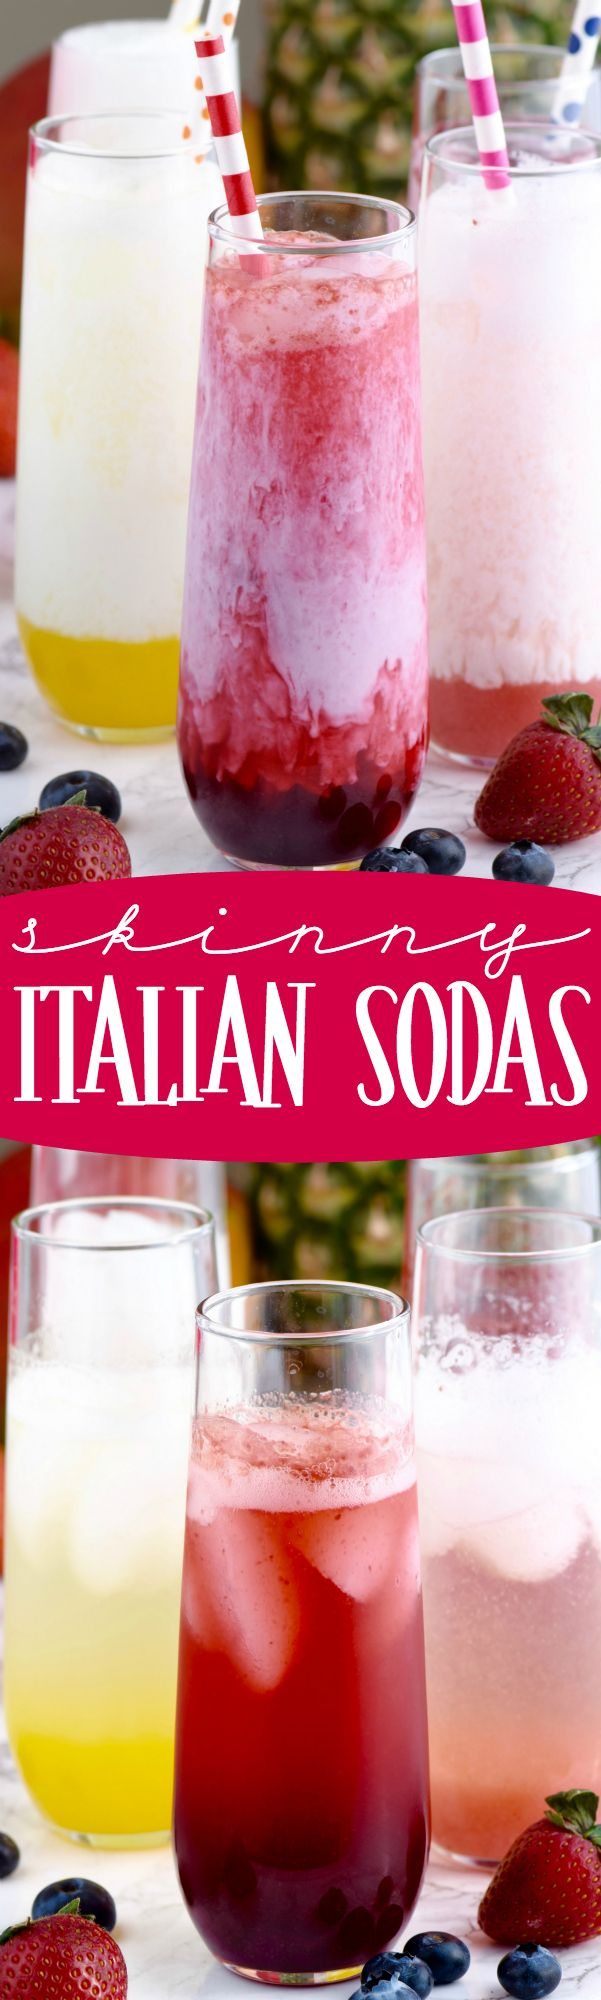 These Skinny Italian Sodas are super delicious! Made with fresh fruit but lightened up! #ZingZeroExcuses #ad